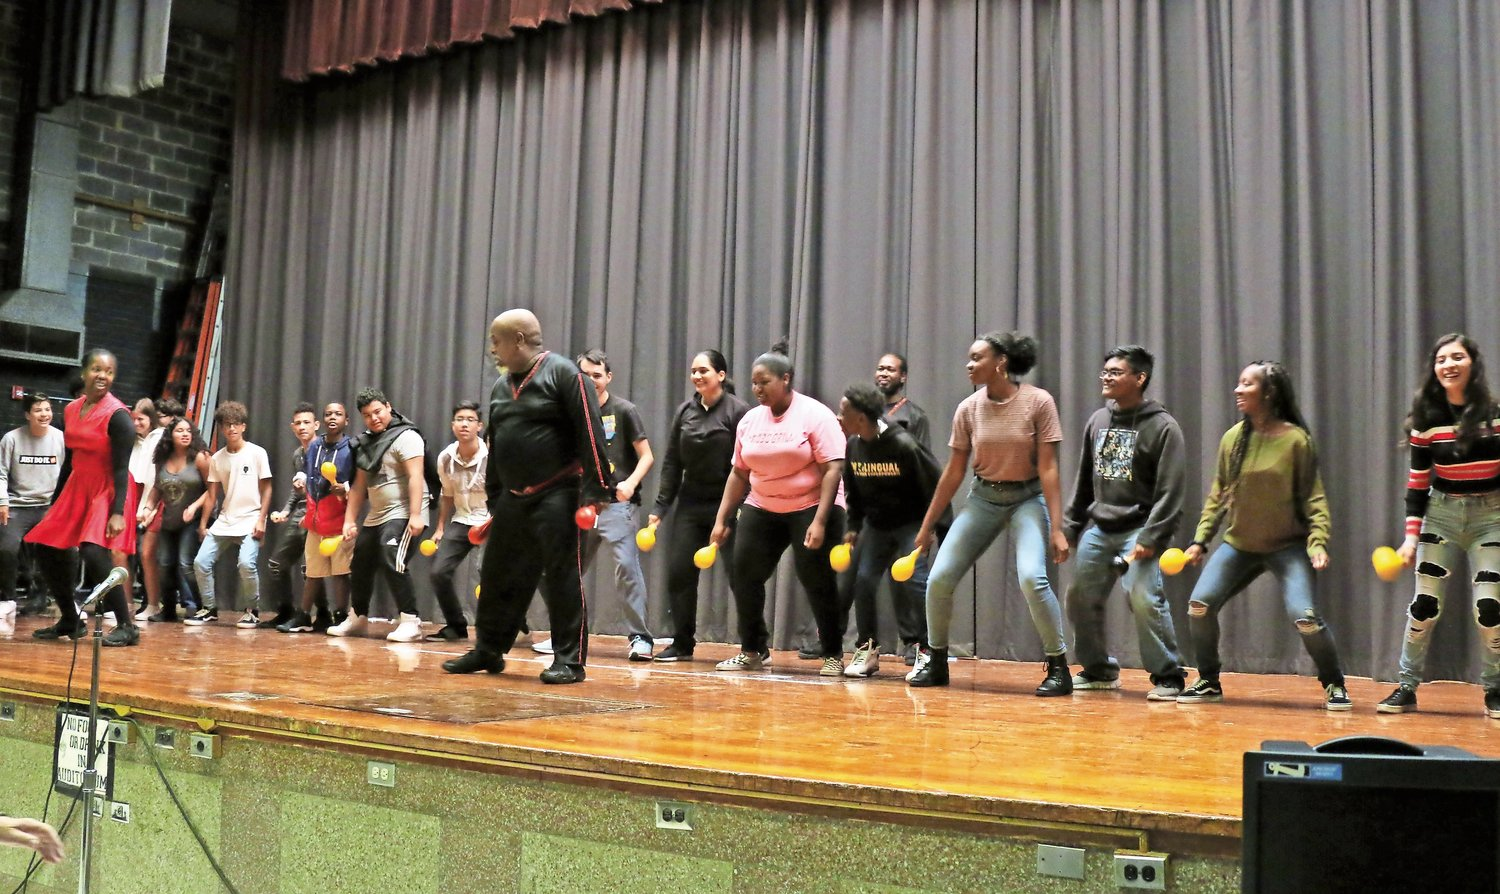 Members of the Phyllis Rose Dance Company taught students at West Hempstead High School traditional dances from Latin America during an assembly on Oct. 12.